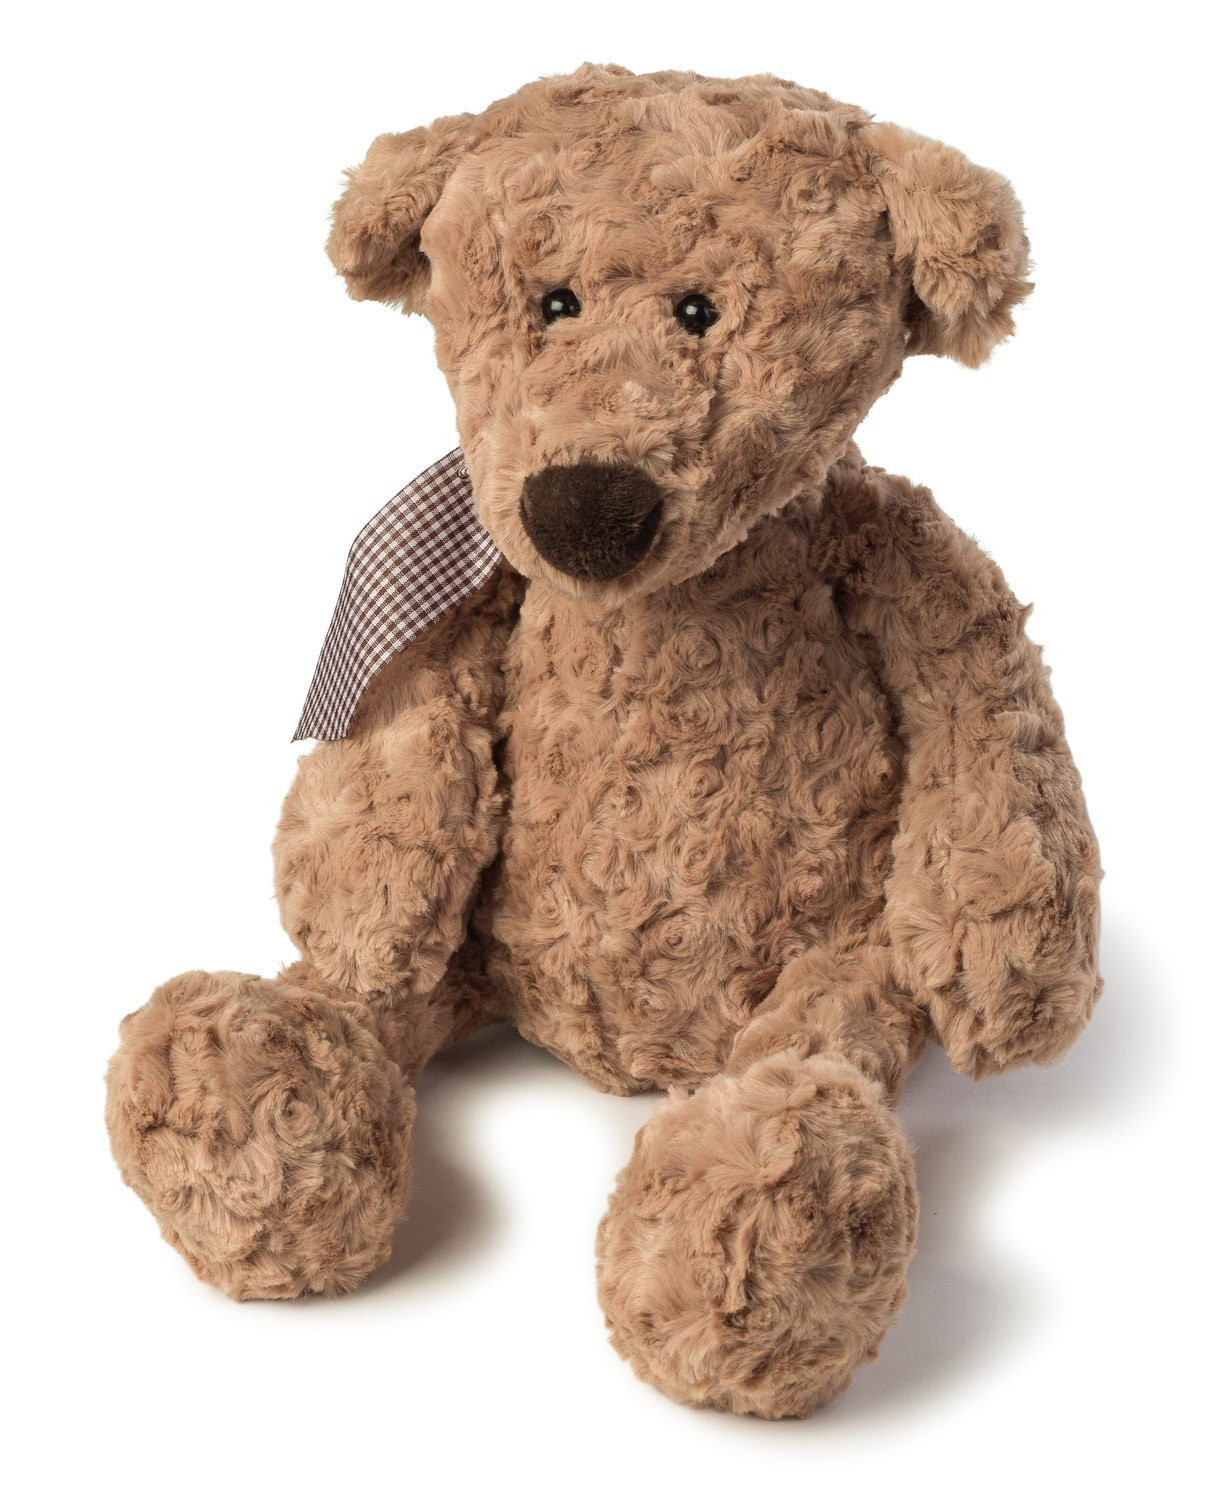 Joon Charles Rosy Plush Teddy Bear, Light Brown, 10-Inches by Joon